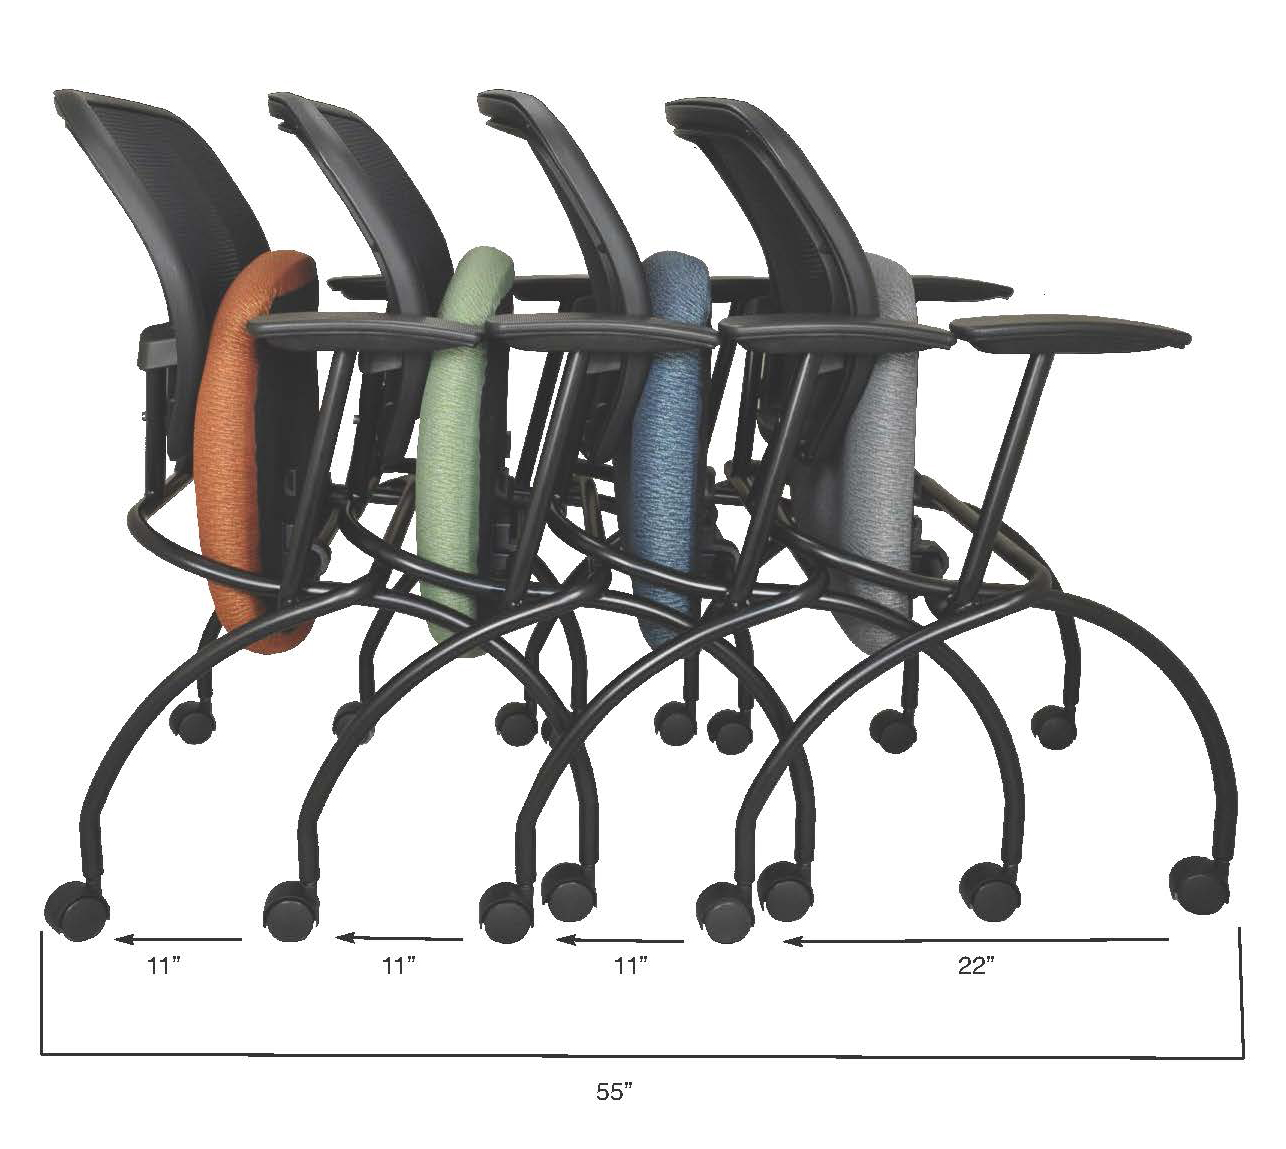 Rust, green, slate blue and gray Caboodle chairs shown nested with footprint measurements